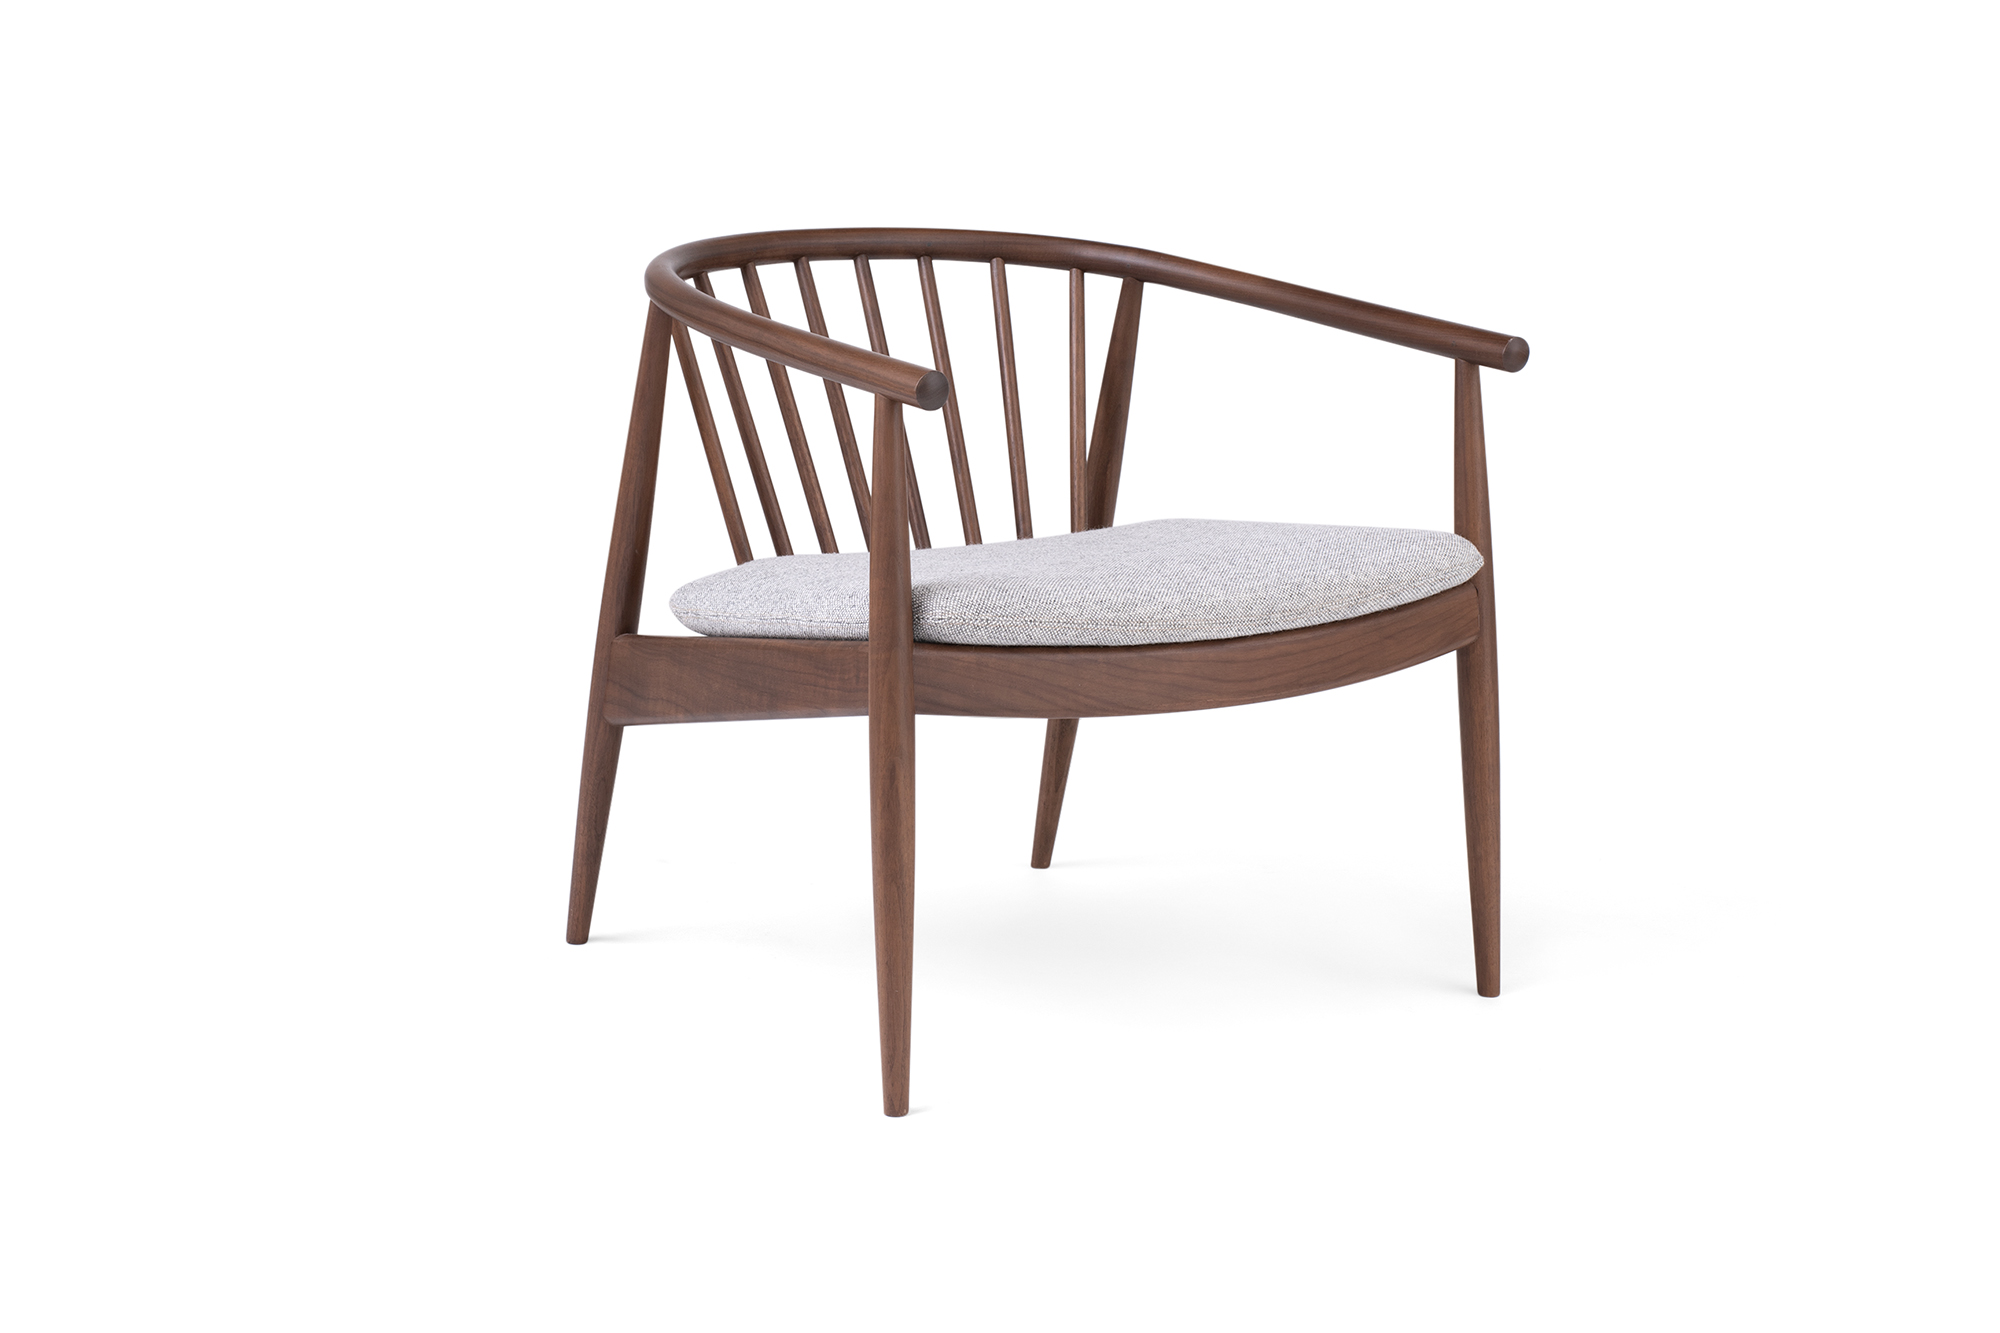 Reprise Chair with Upholstered Seat